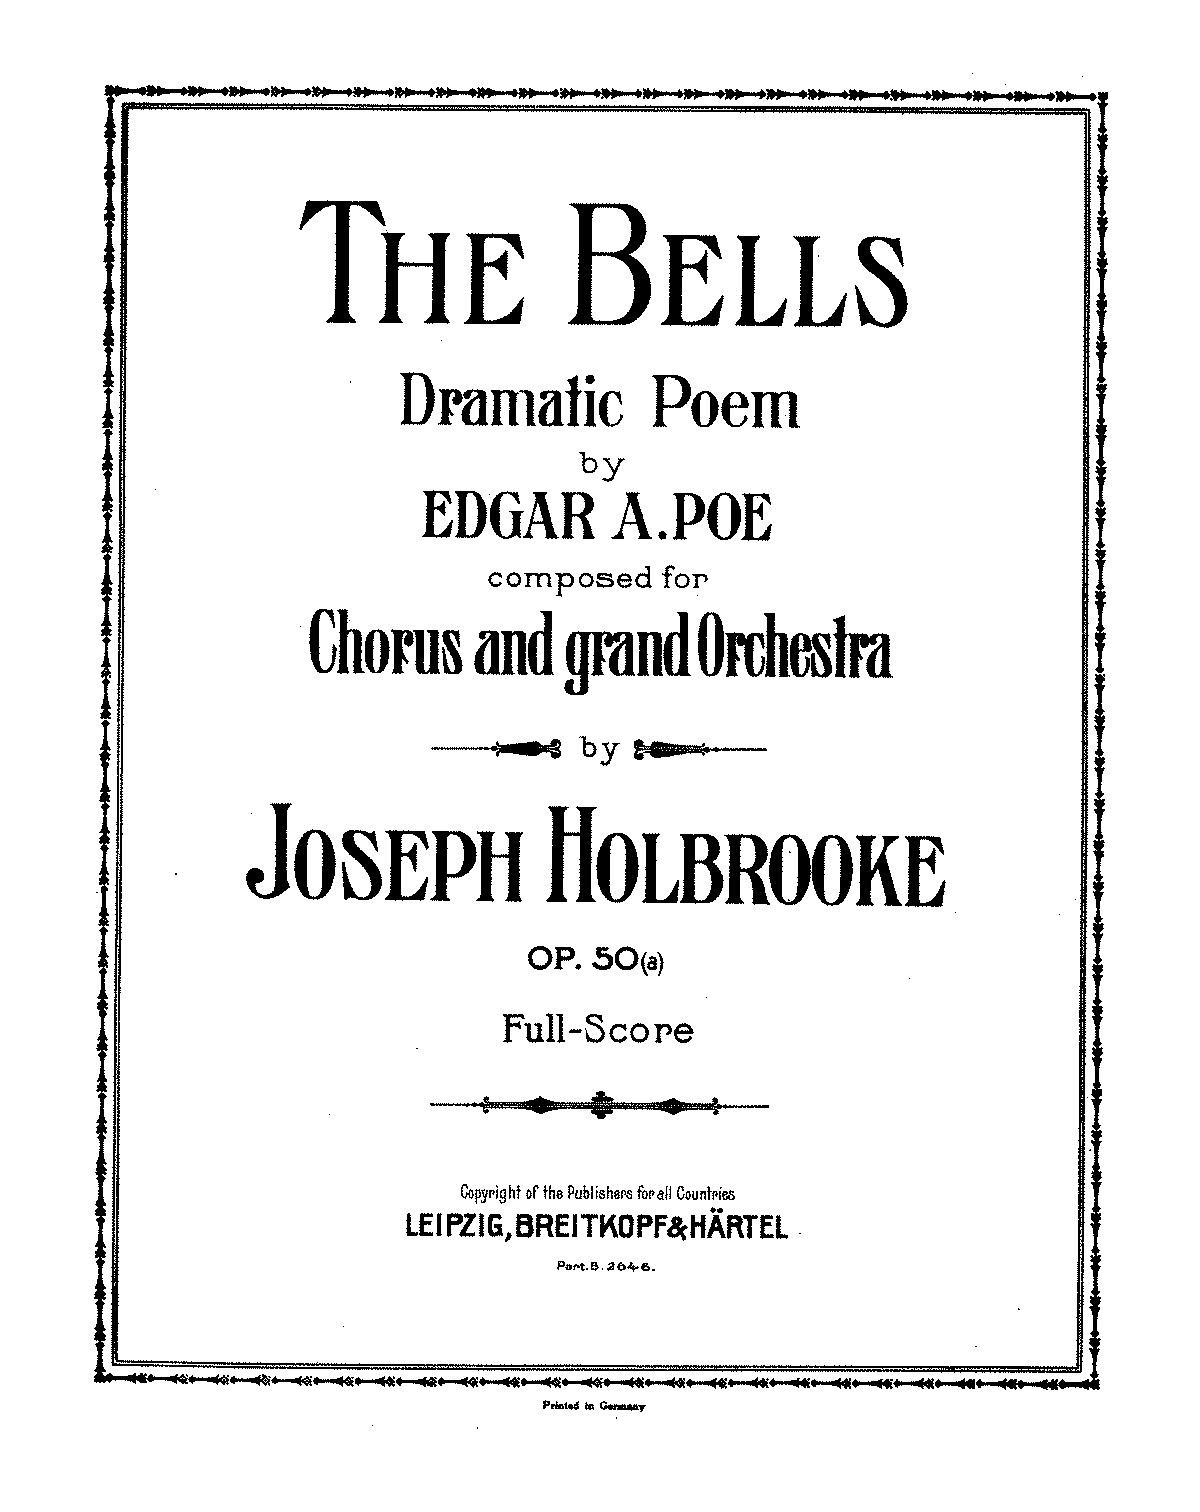 PMLP58258-Holbrooke - The Bells Dramatic Poem for Chorus and grand Orchestra Op 50a.pdf